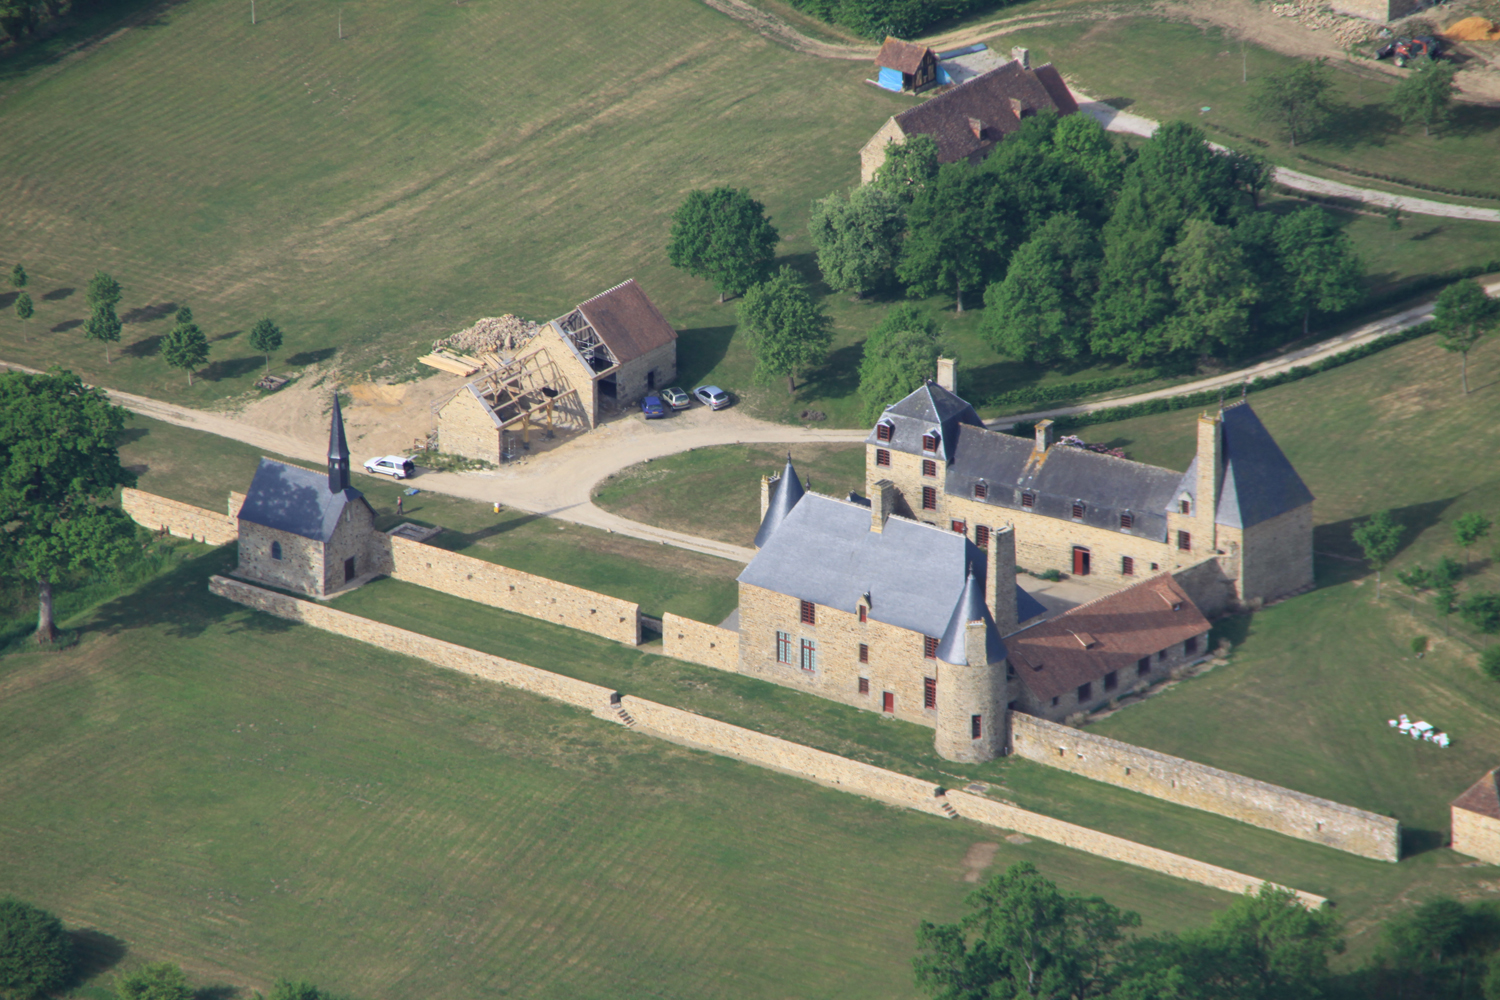 Aerial vue of the Chaslerie manor house © Jérôme Travert